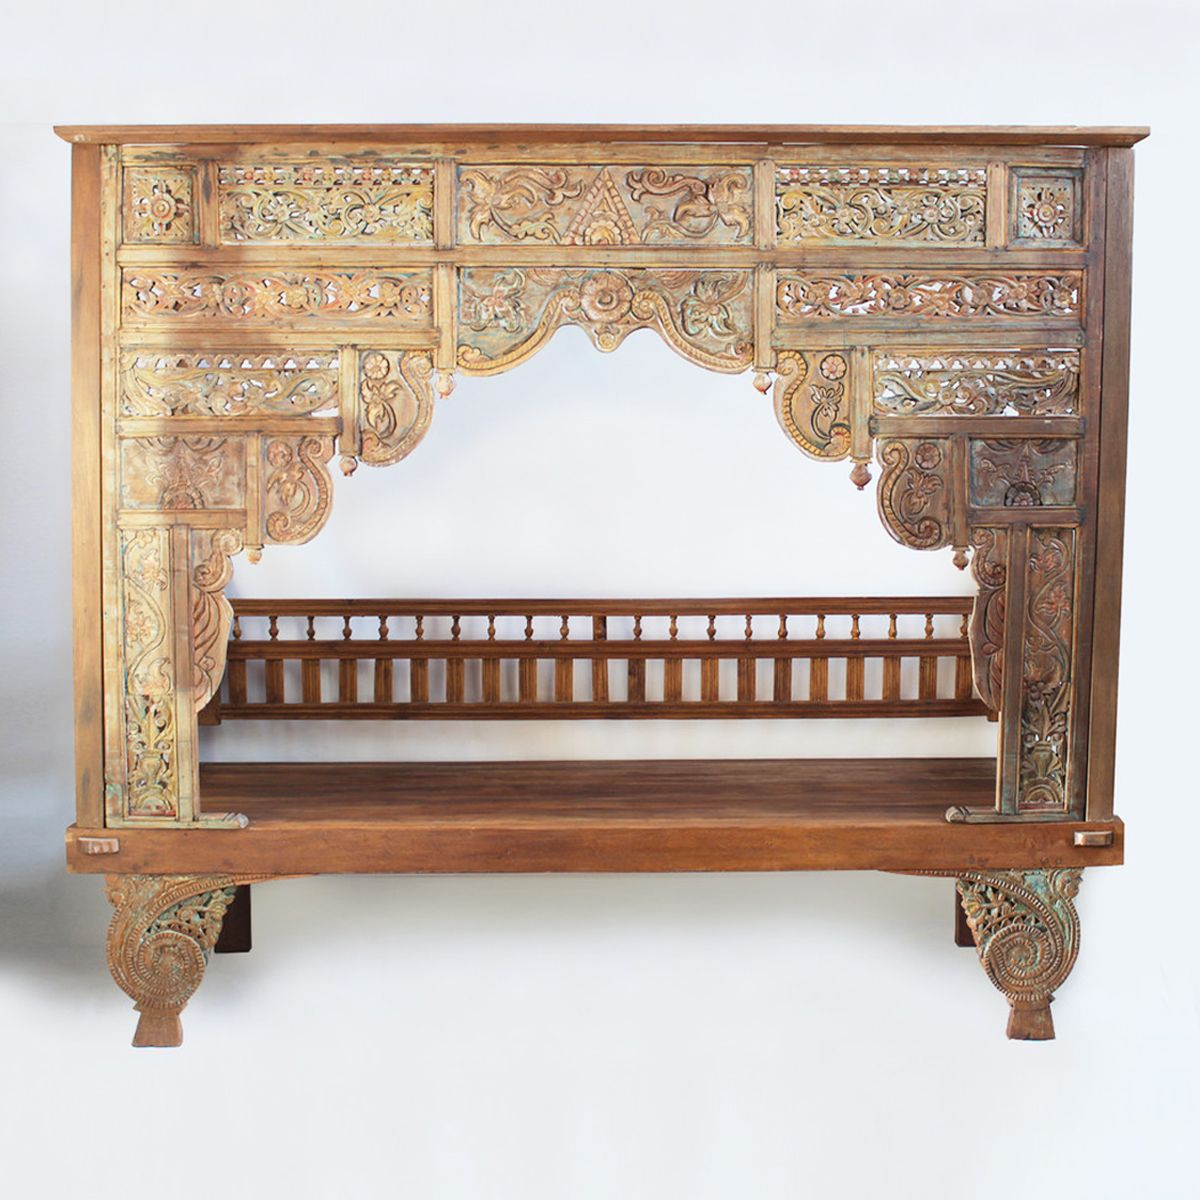 Patina style romantic bedroom - Original Balinese Carved Daybed Wedding Bed Beautifully Detailed Fa Ade With Original Patina Traditionally